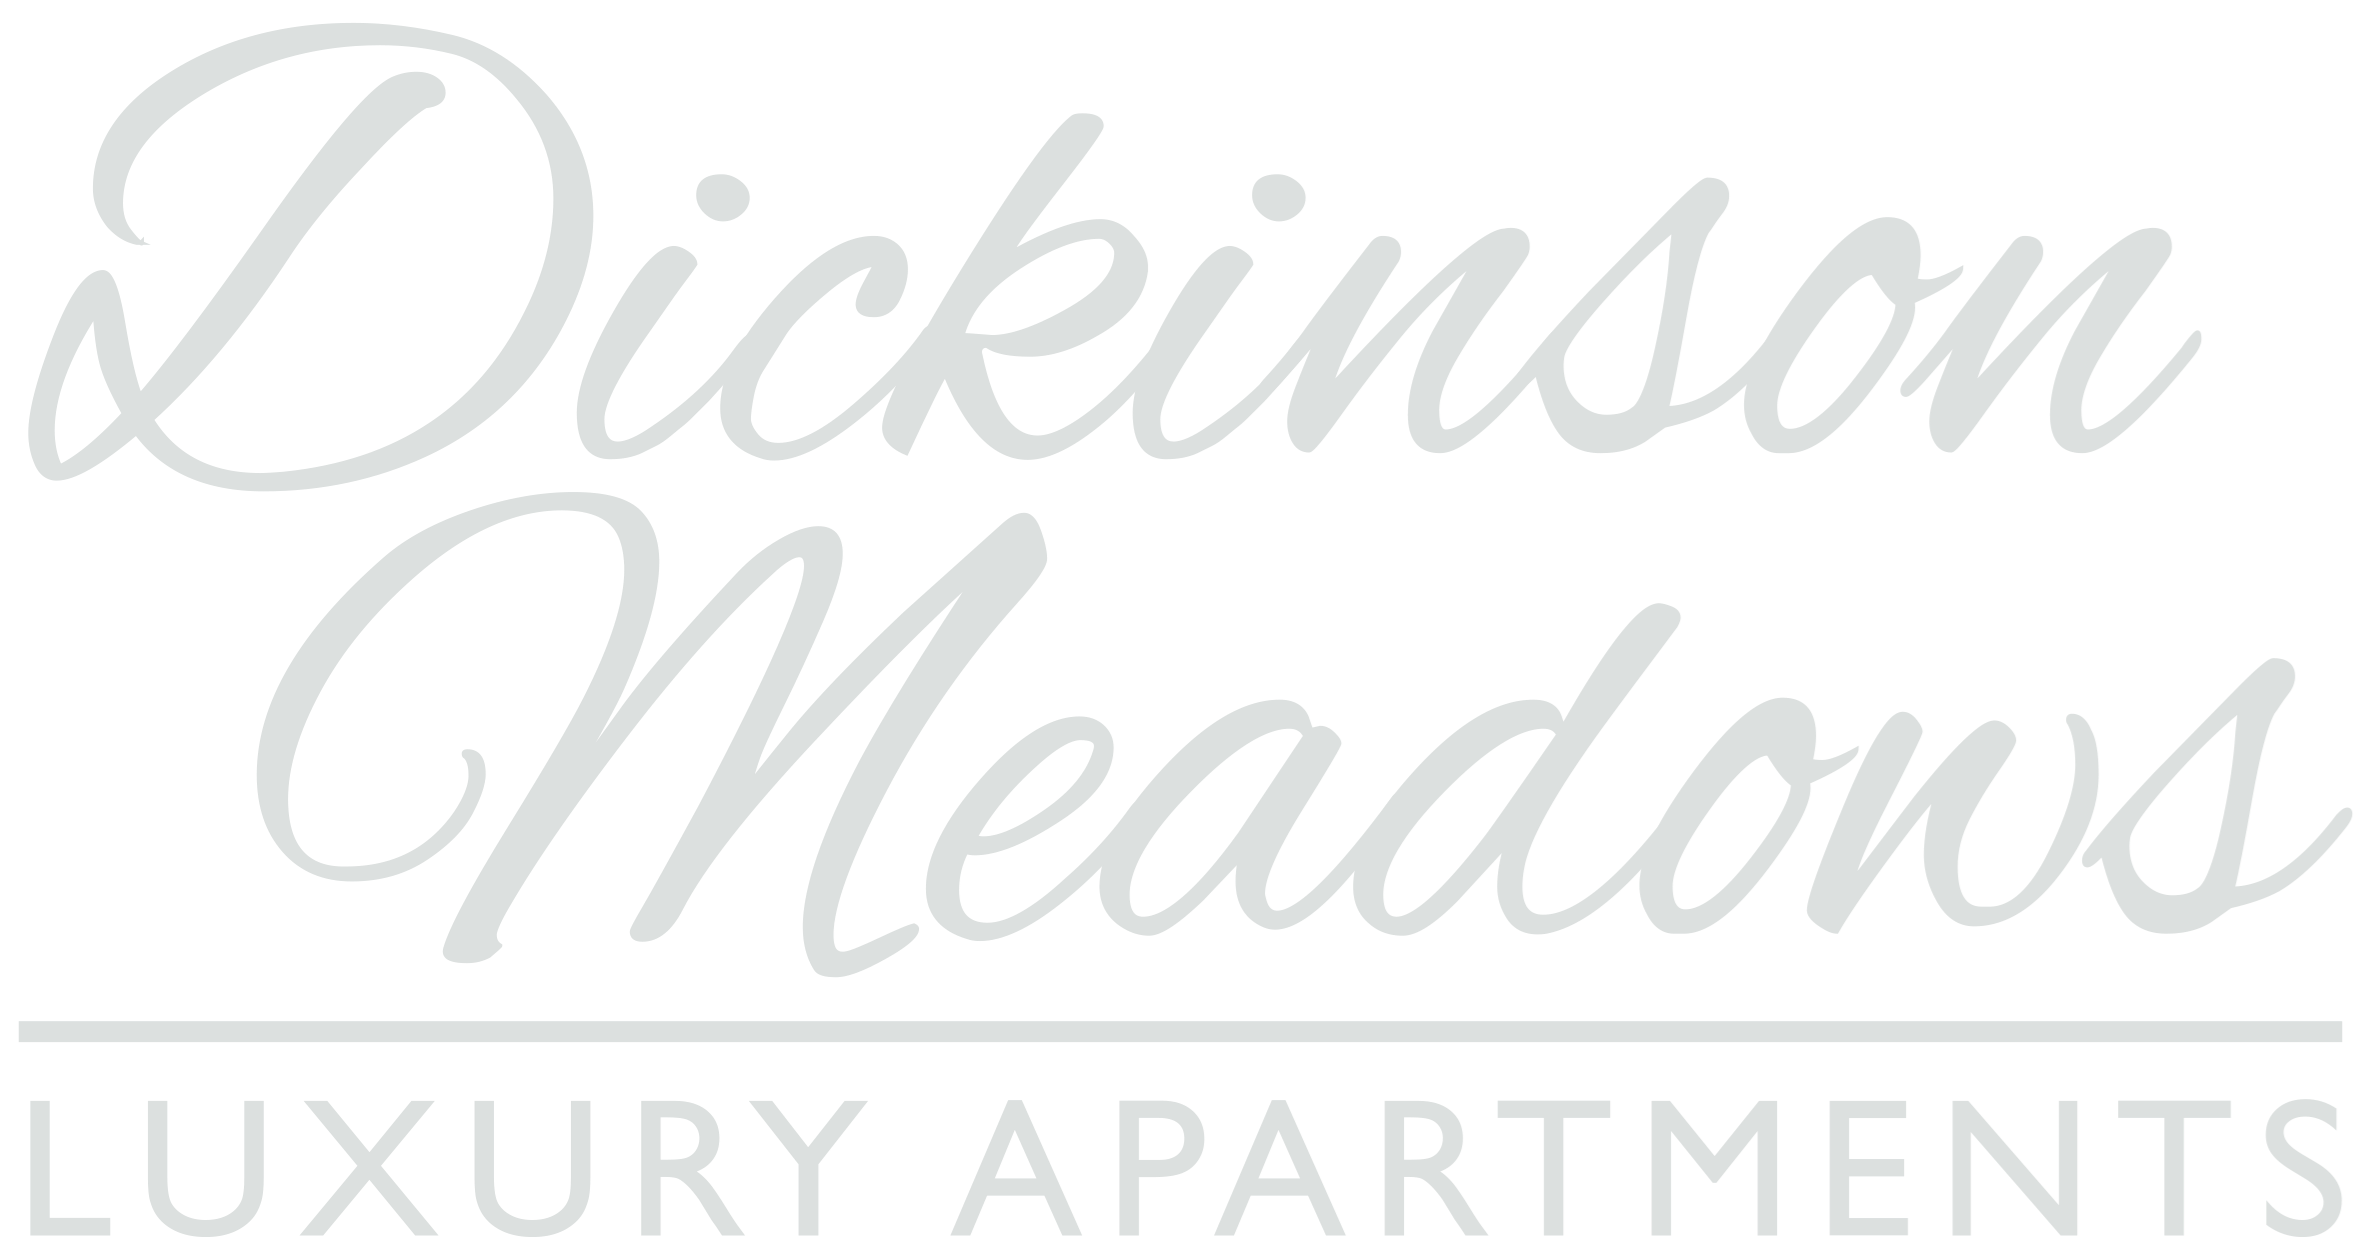 Dickinson Property Logo 31